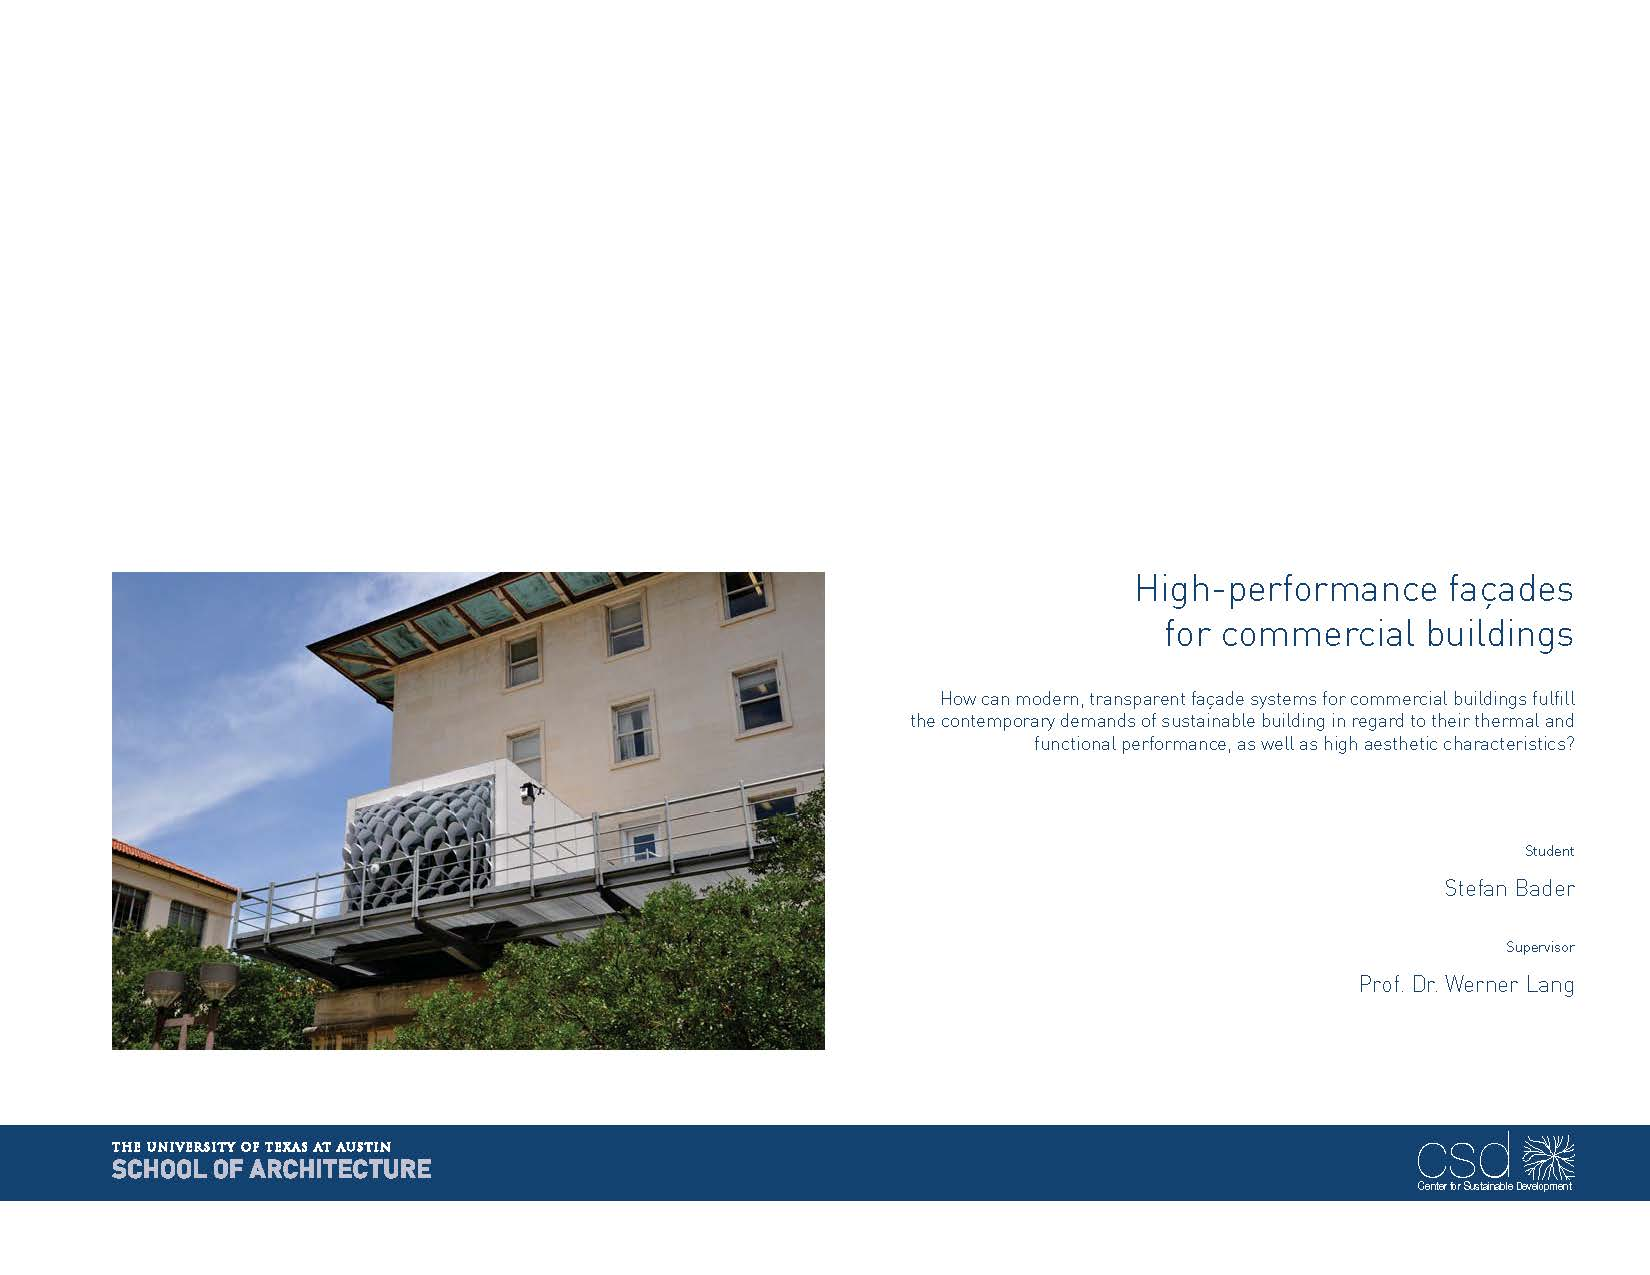 High-performance façades for commercial buildings cover